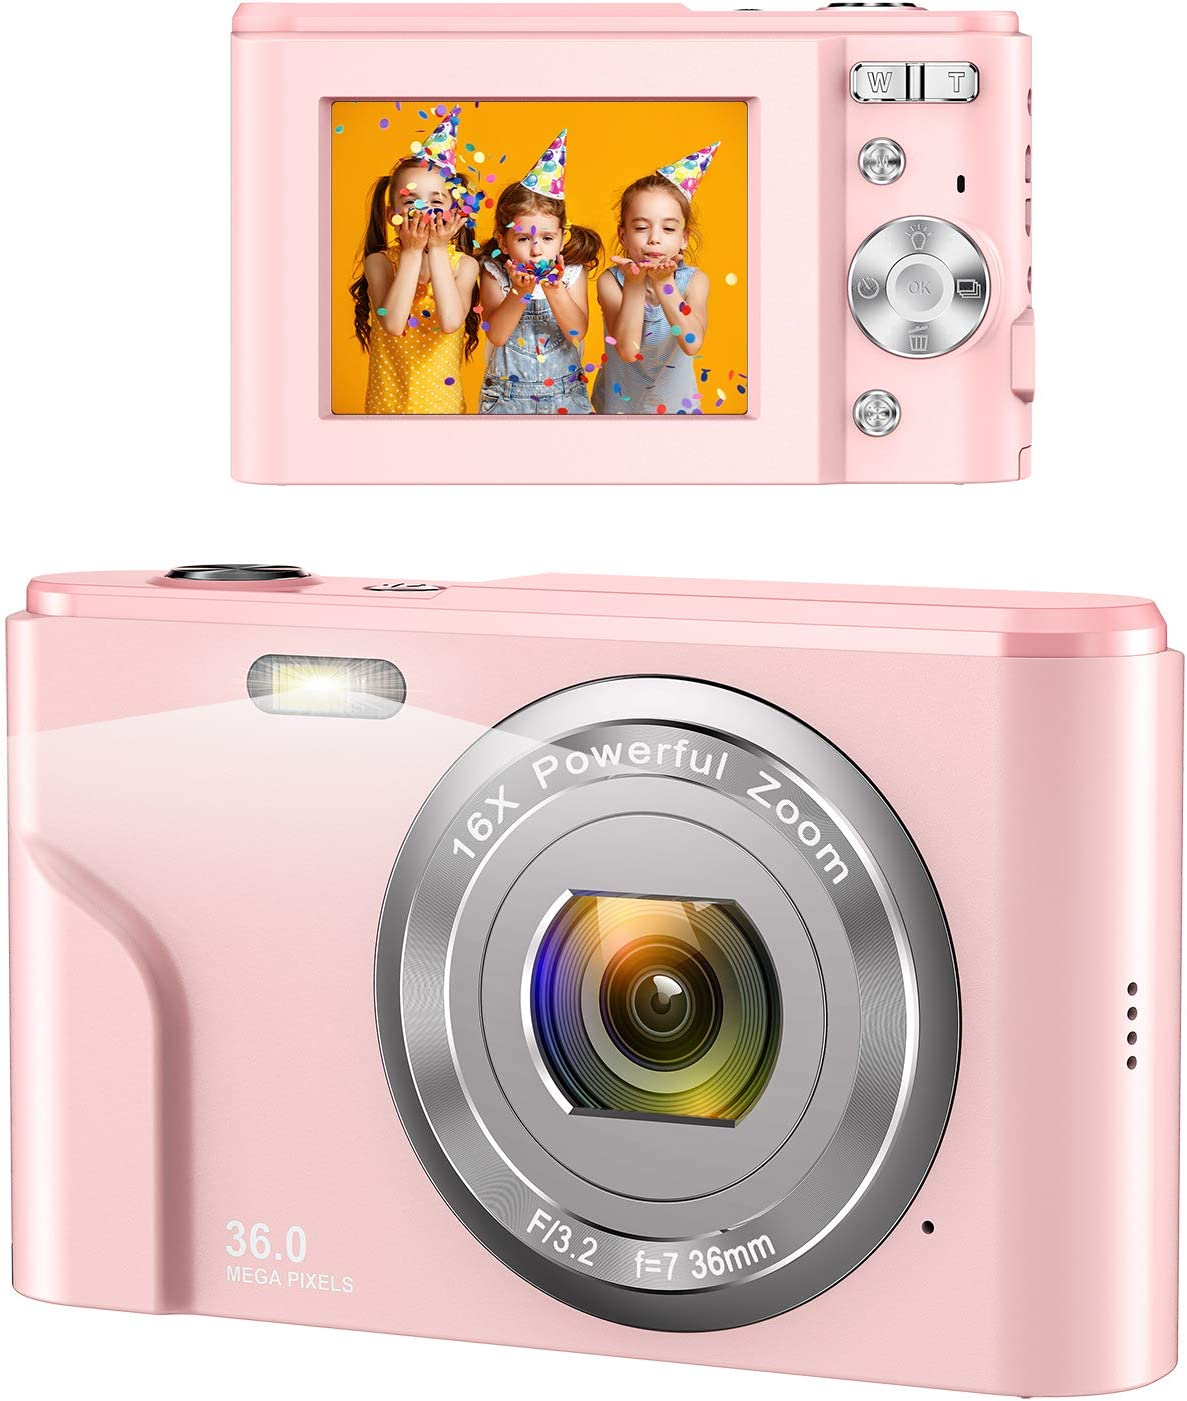 Digital Camera, wechi 1080P HD Digital Students Cameras Pink Video Camera Vlogging Camera with 16X Digital Zoom, Mini Camera for Kids/Teens/Seniors/Beginners